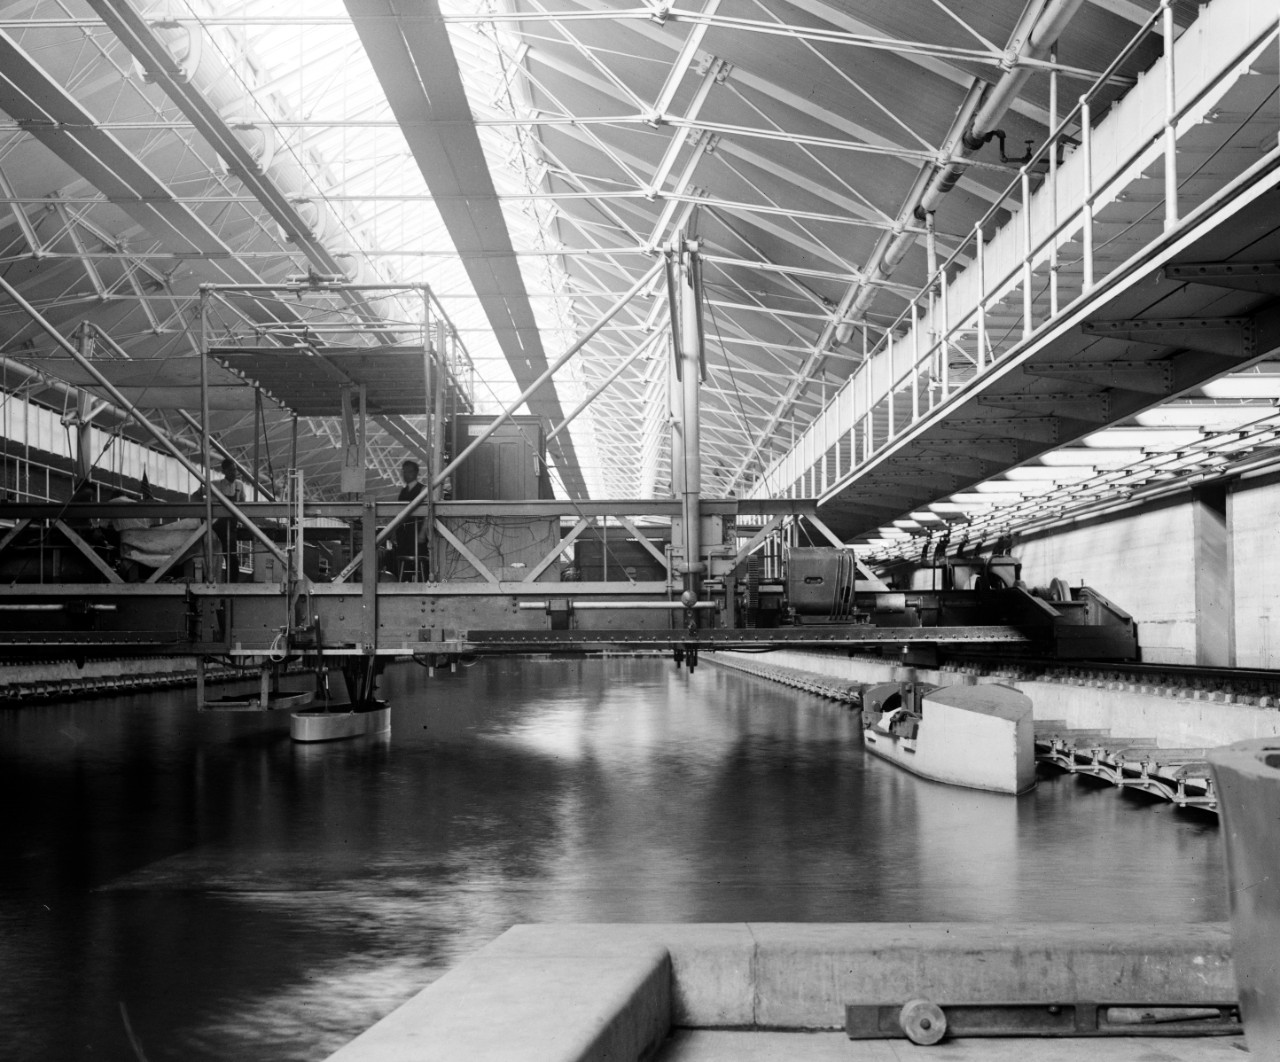 LC-DIG-NPCC-00824:  Experimental Model Basin, Washington Navy Yard, 1918.   Note man on platform.  The Model Basin is now the Cold War Gallery of the National Museum of the U.S. Navy.   Courtesy of the Library of Congress.